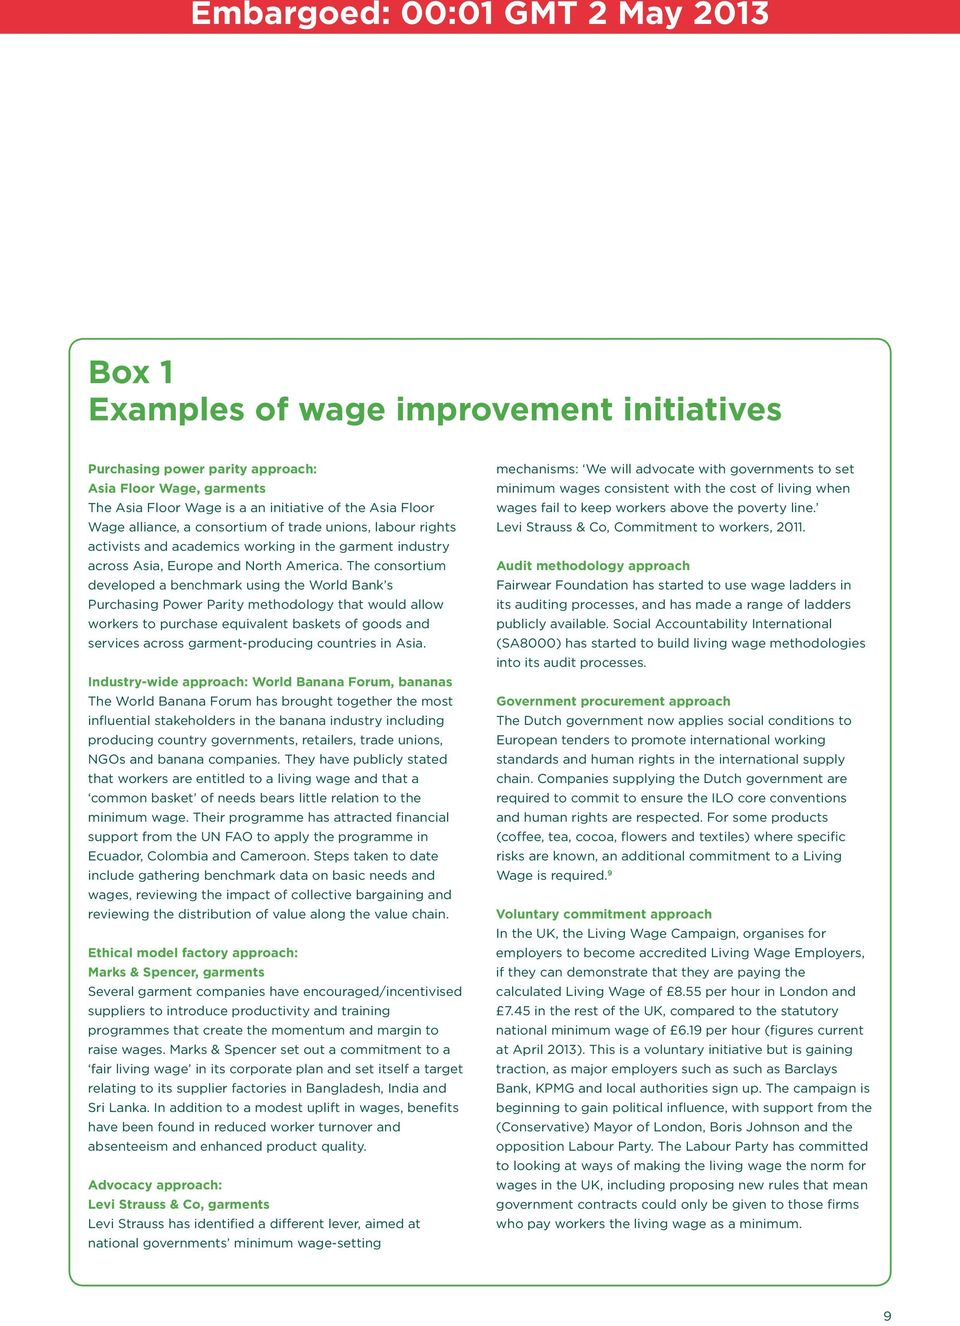 Wage alliance, a consortium of trade unions, labour rights Levi Strauss & Co, Commitment to workers, 2011.